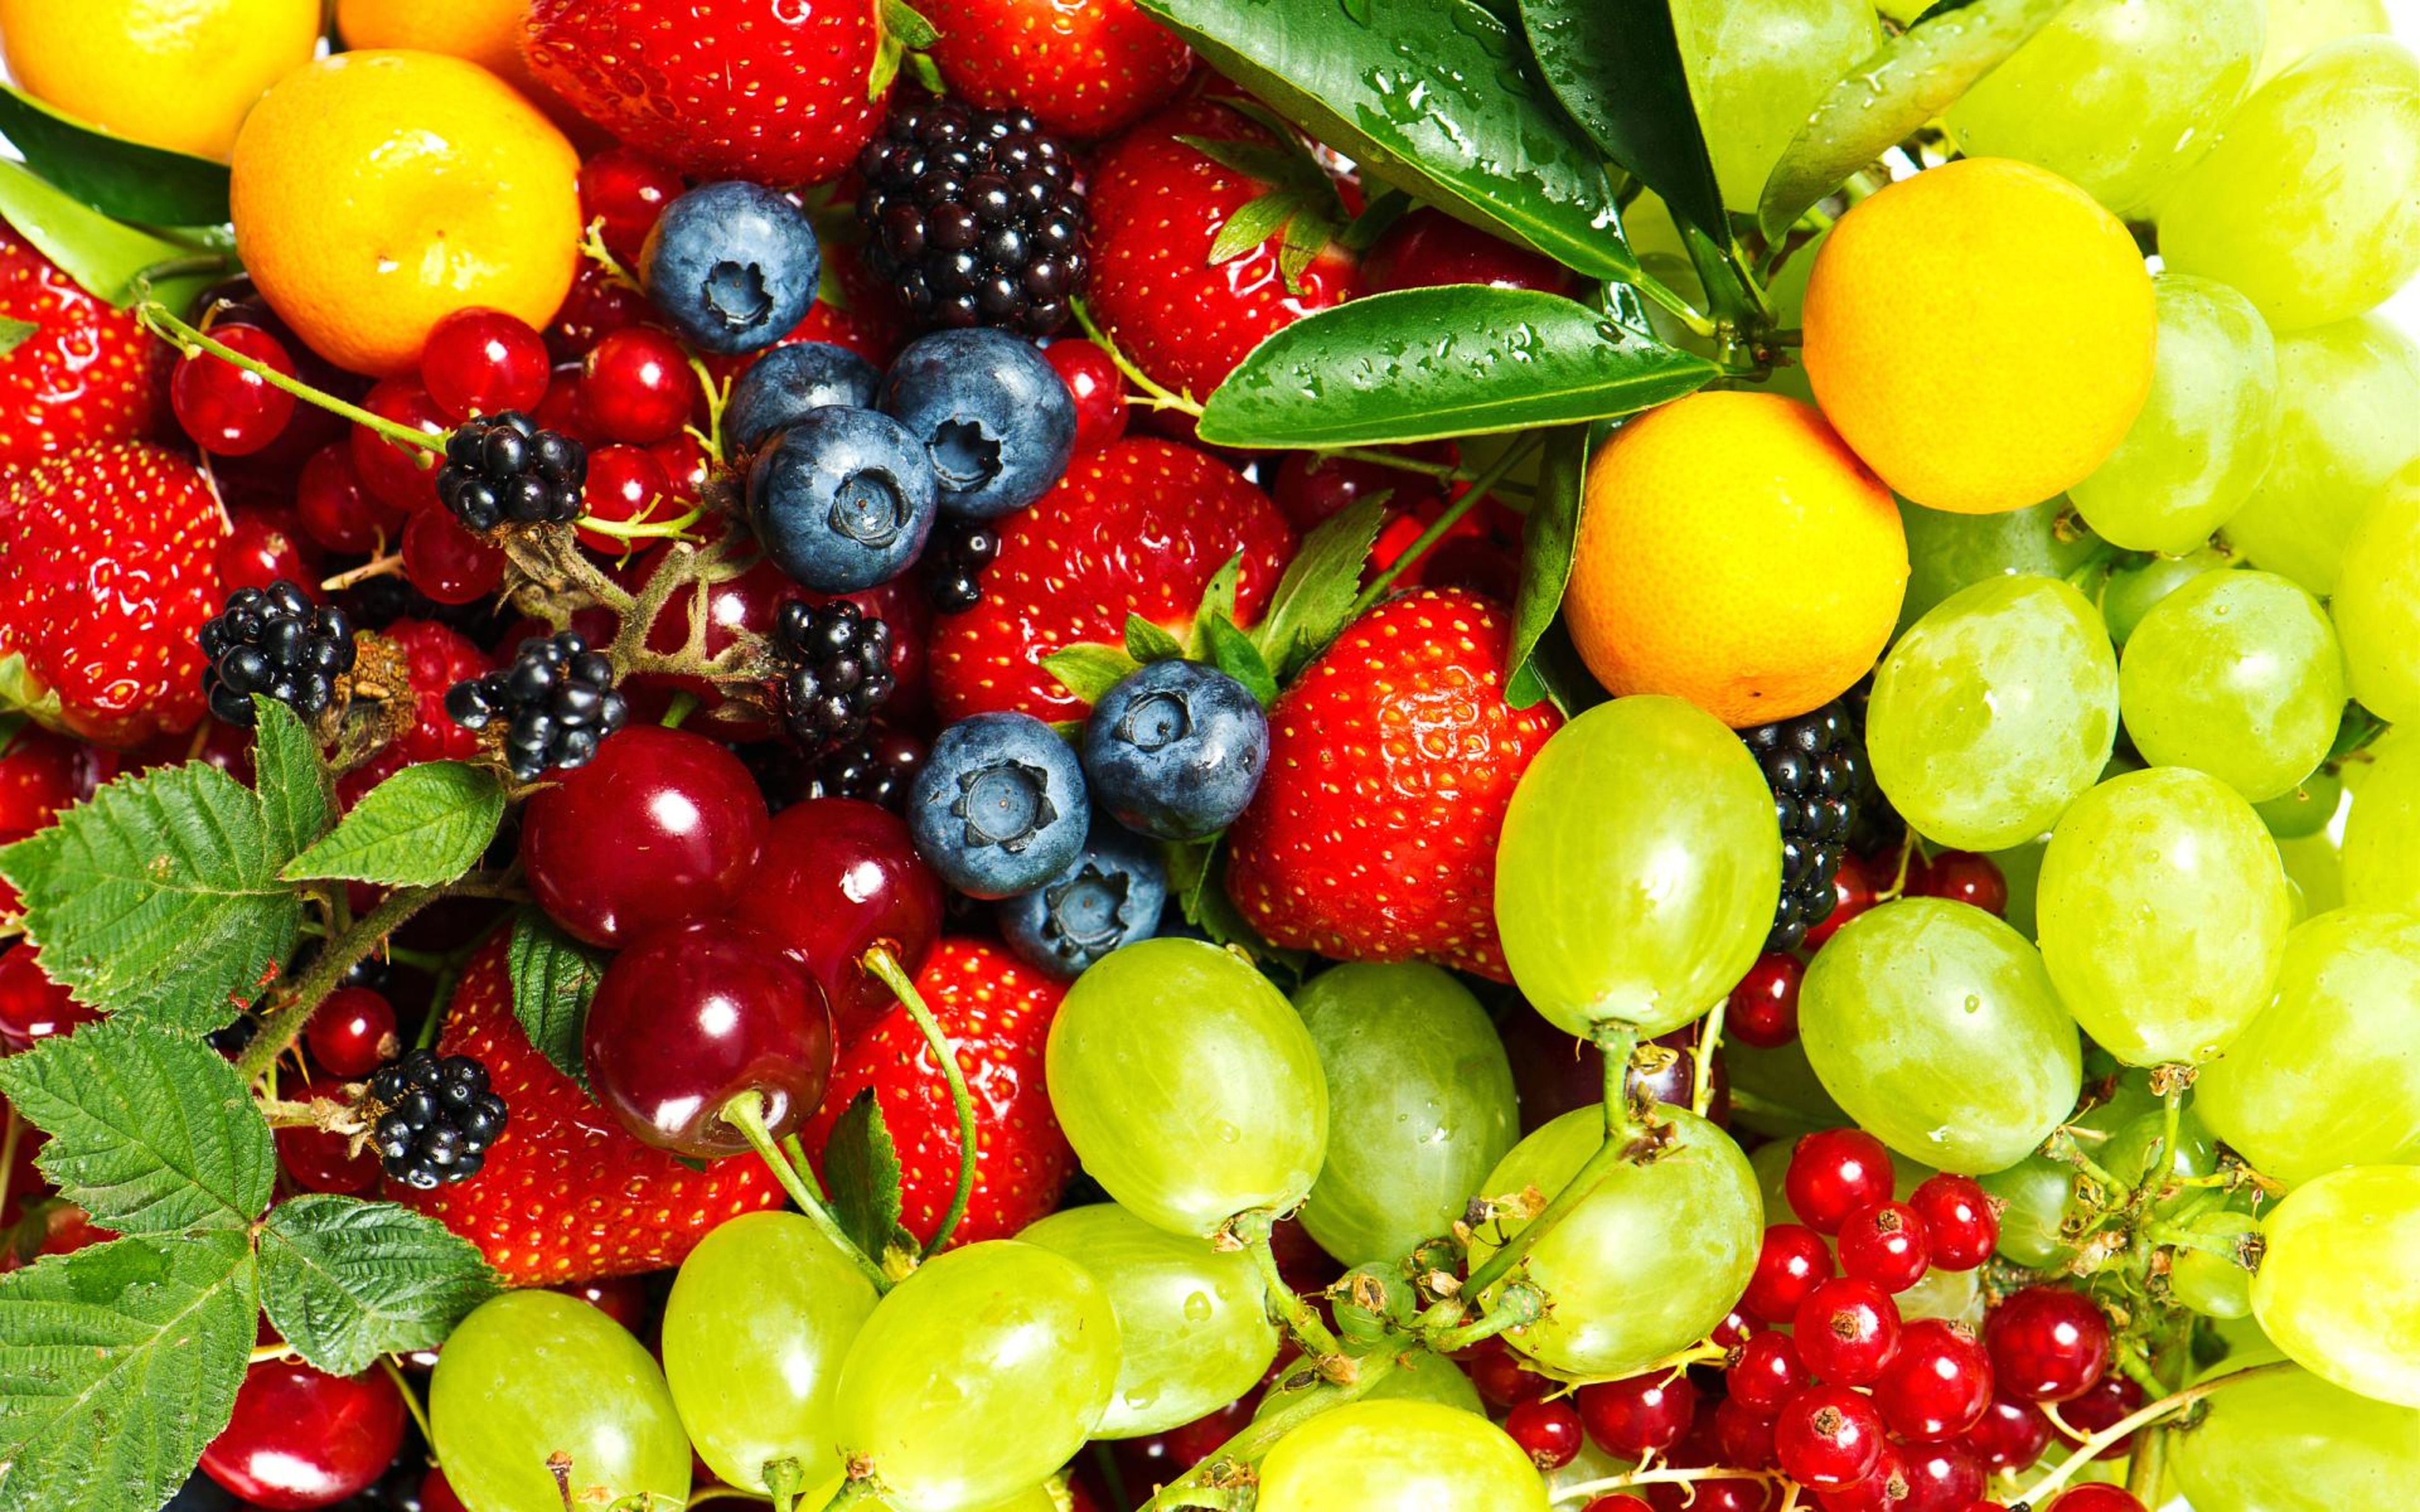 Barbaras Küchengeheimnisse And God Created Summer Fruits So That We Get Relief From The